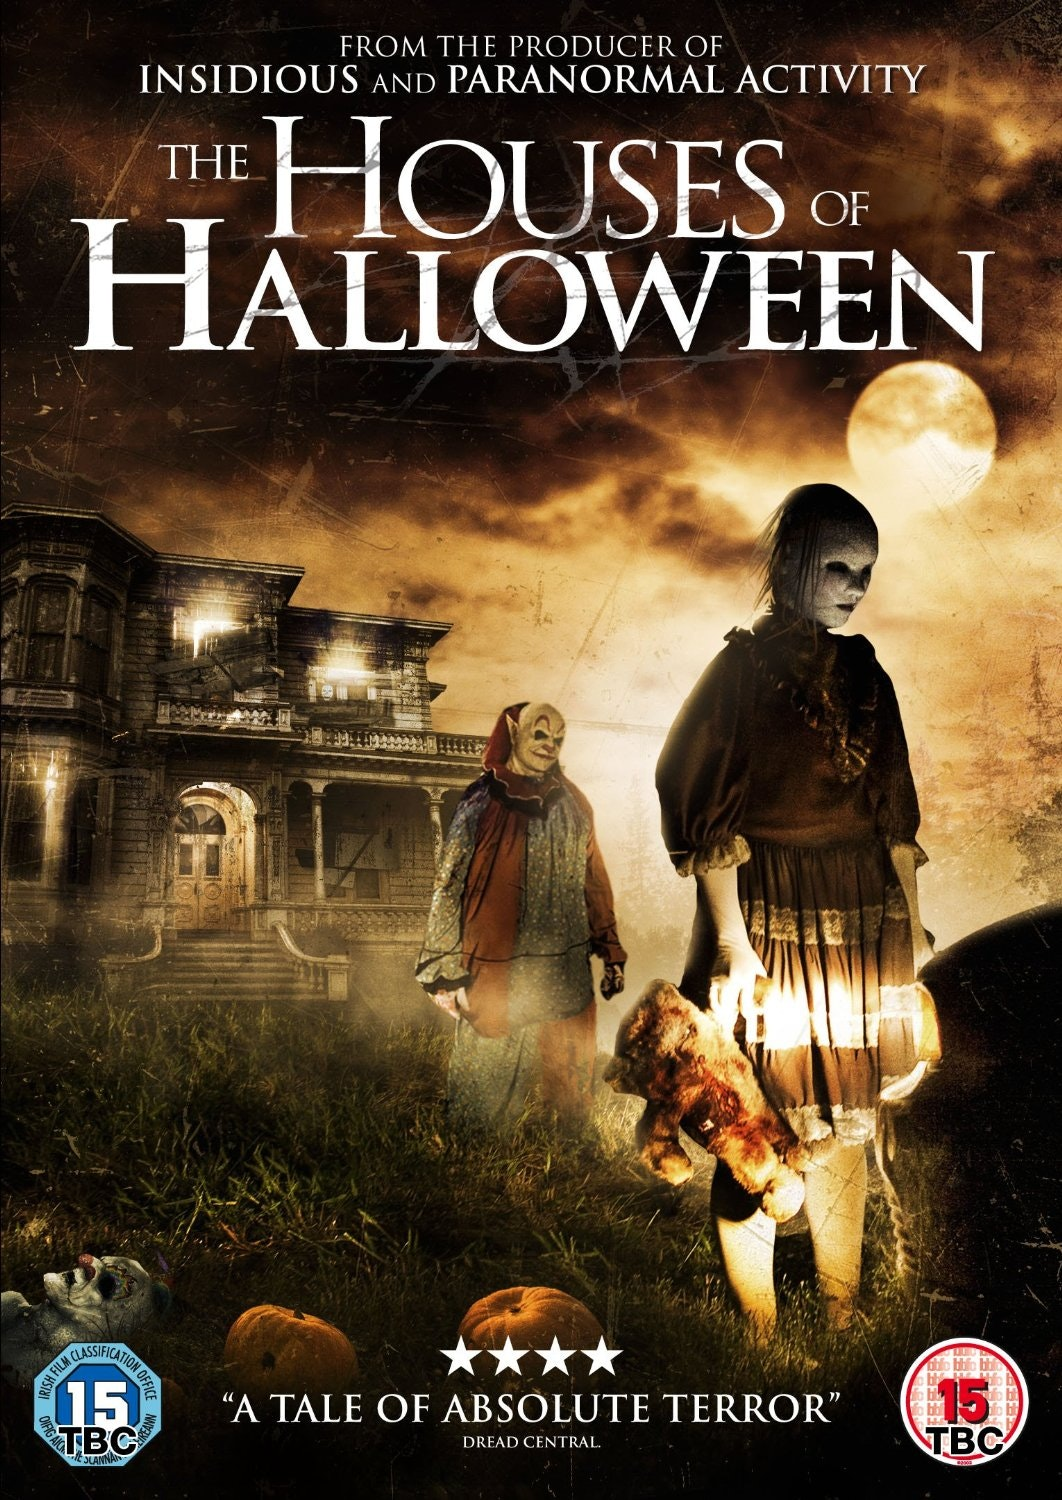 The Houses of Halloween DVD sweepstakes